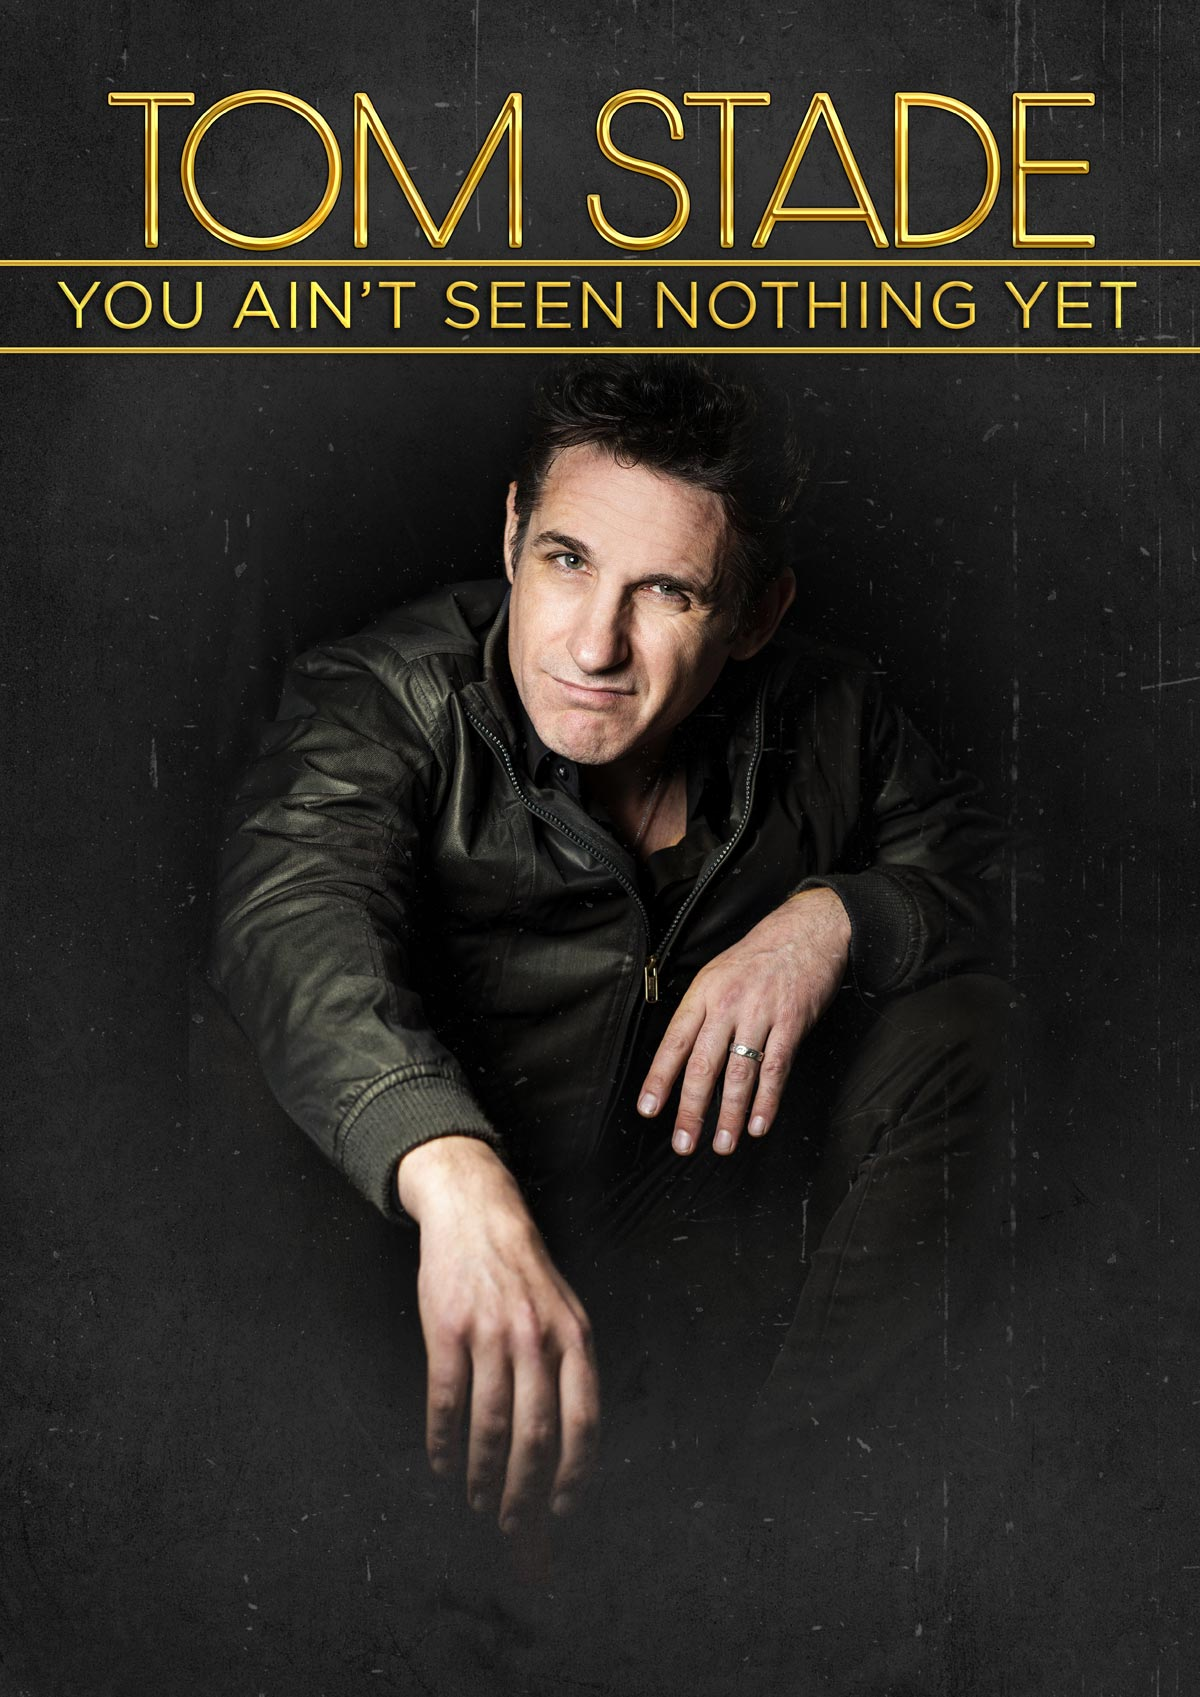 Tom Stade's You Ain't See Nothing Yet UK Tour